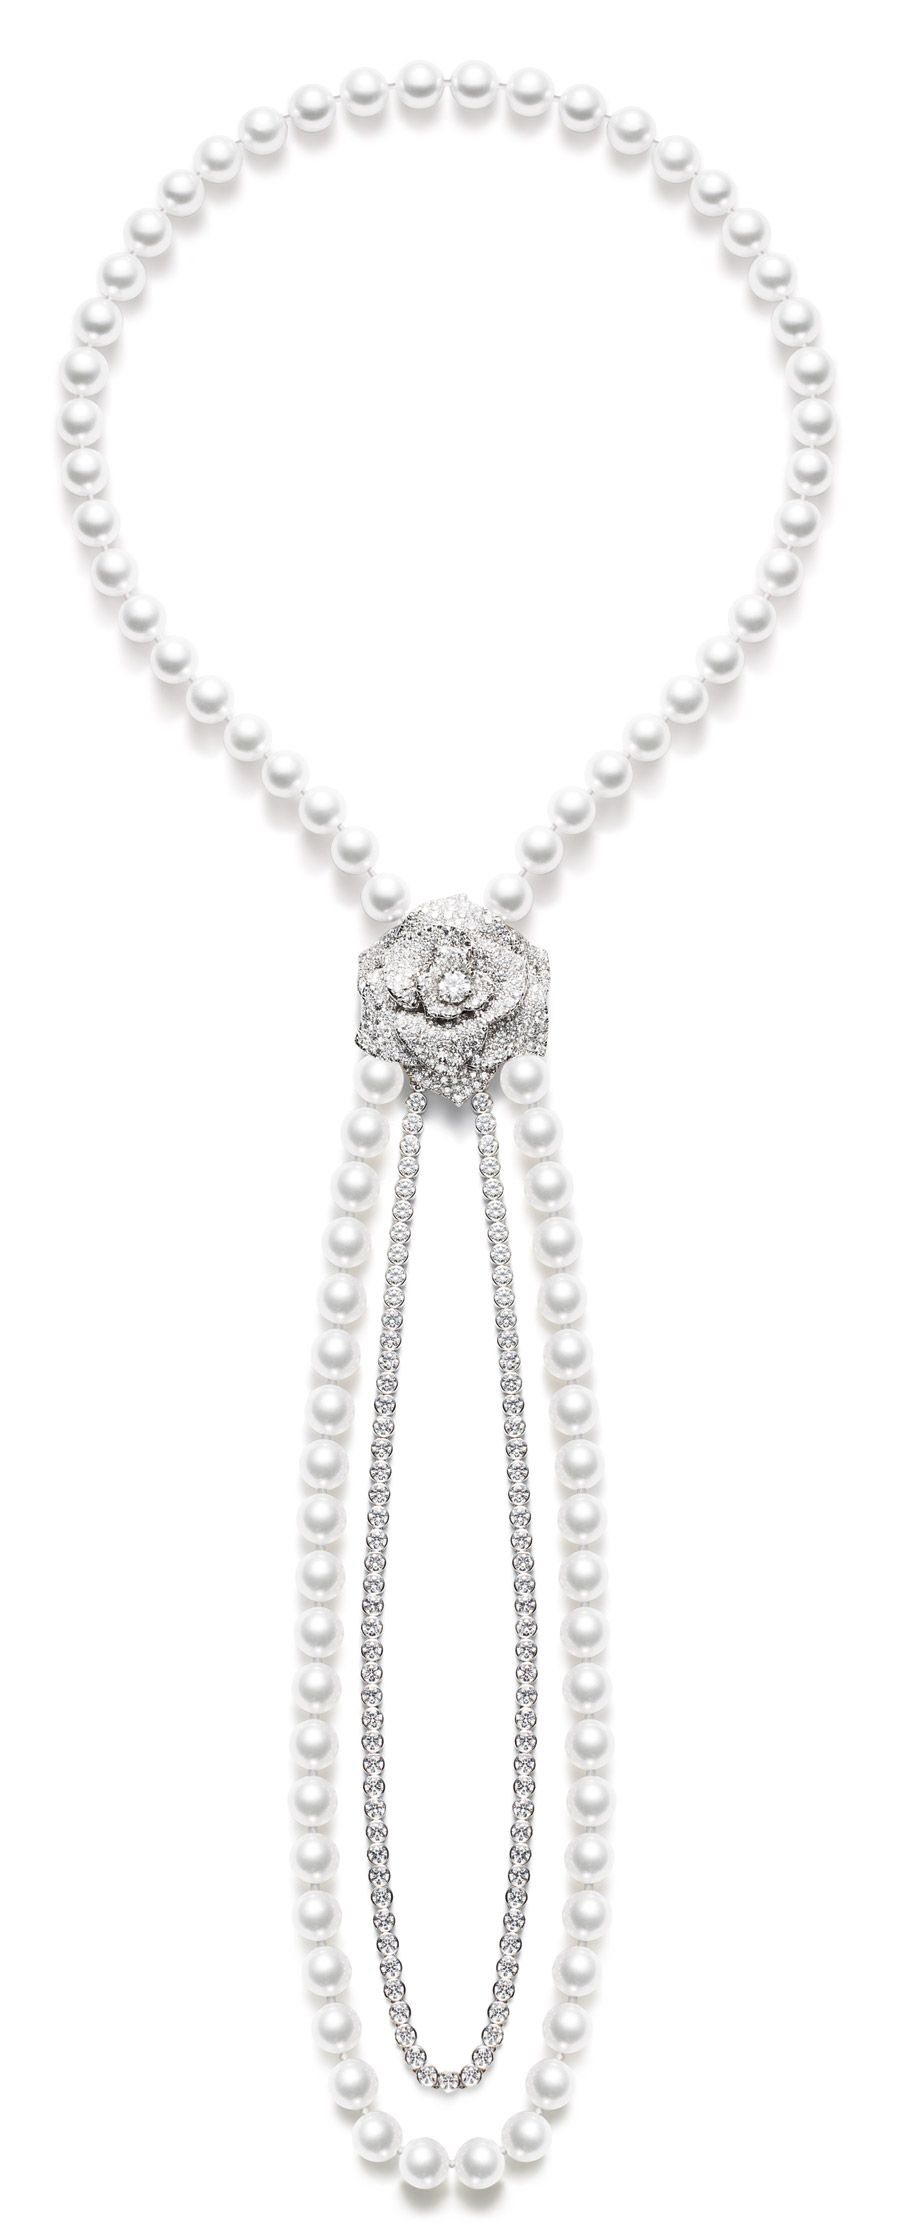 Piaget 18K White Gold Rose Necklace with Diamonds & Pearls LzFPhp